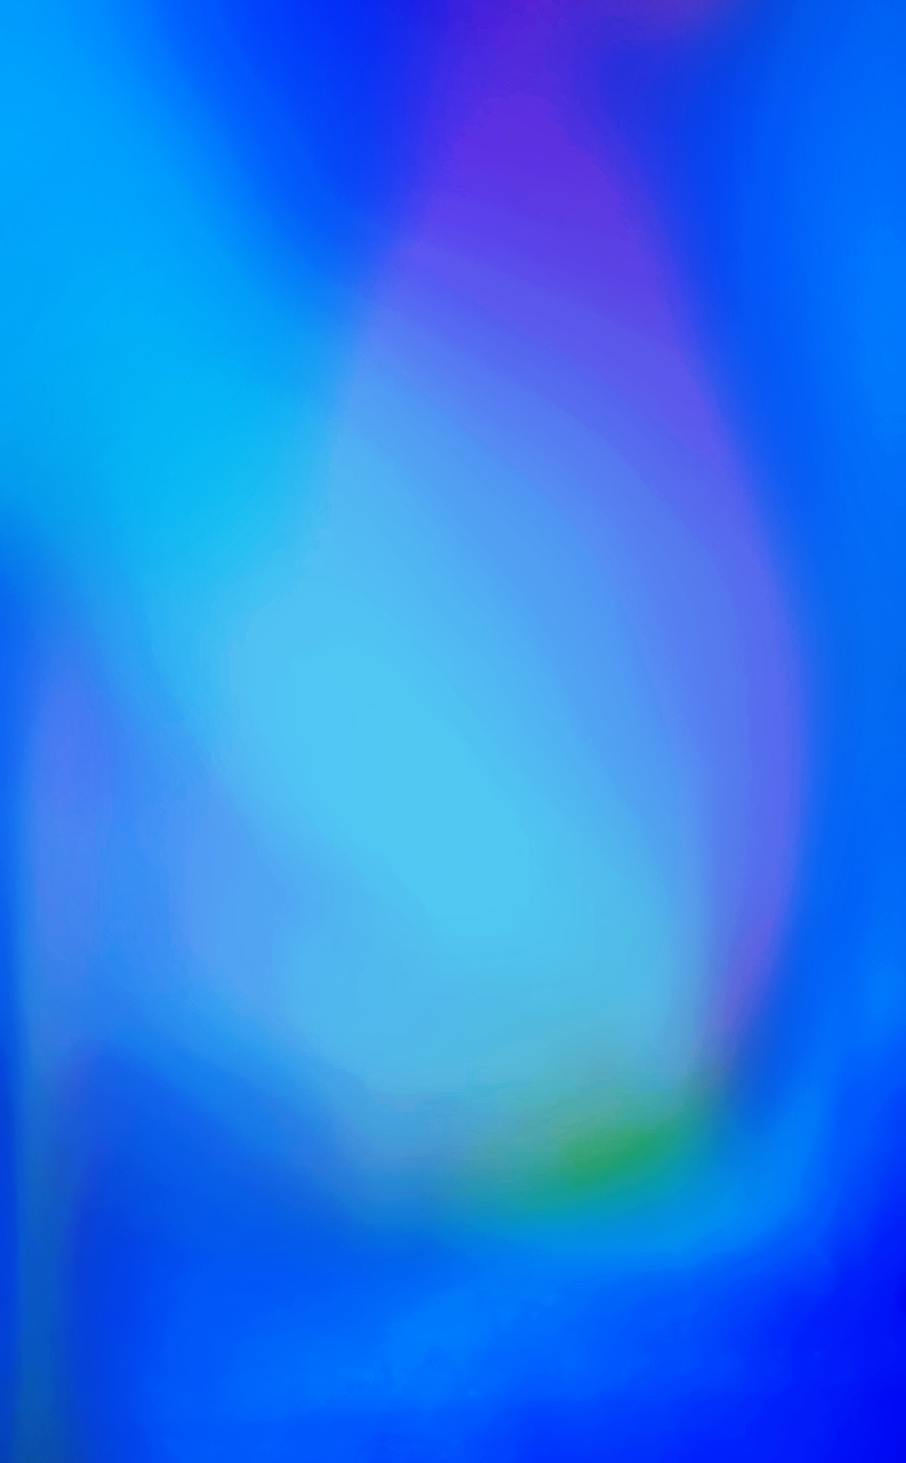 Moody Blue Iphone Abstract Wallpaper - Blue Iphone Abstract - HD Wallpaper